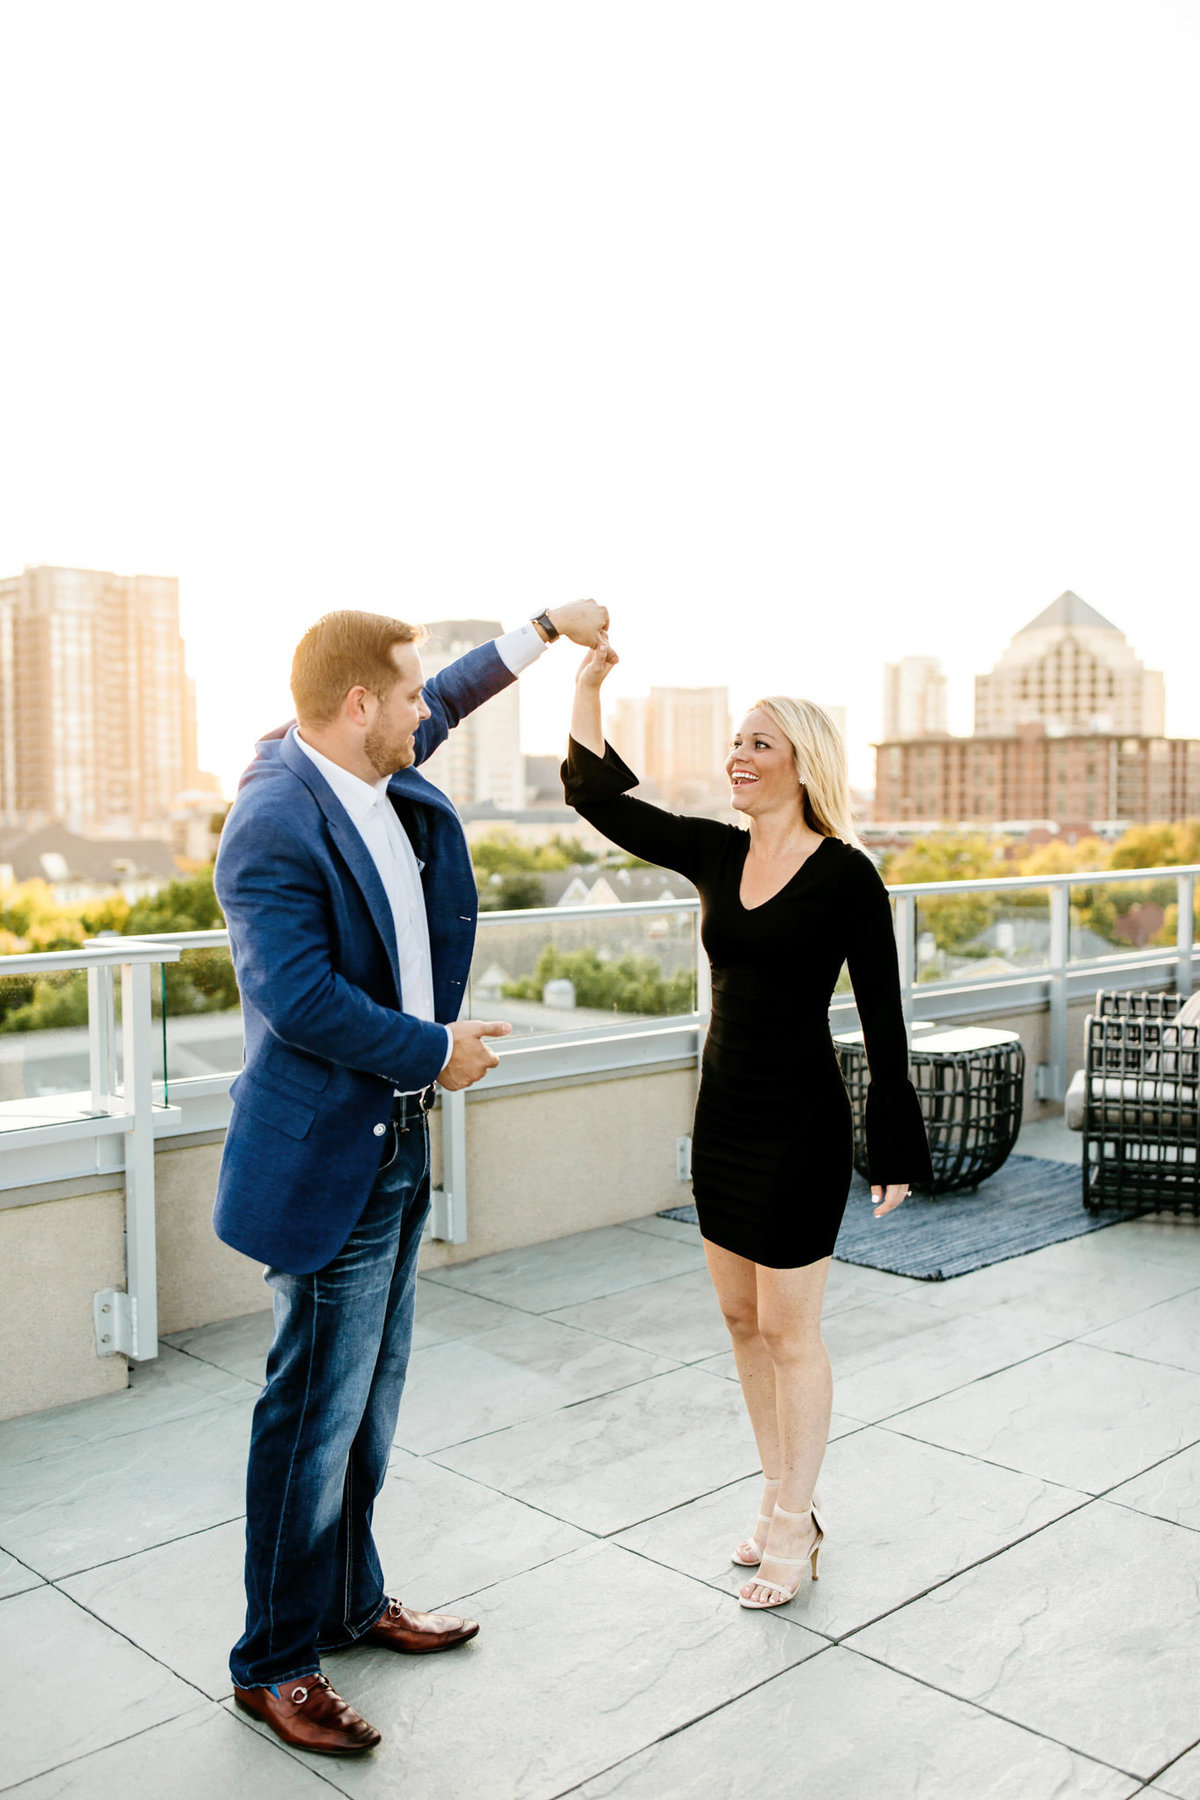 Eric & Megan - Downtown Dallas Rooftop Proposal & Engagement Session-92